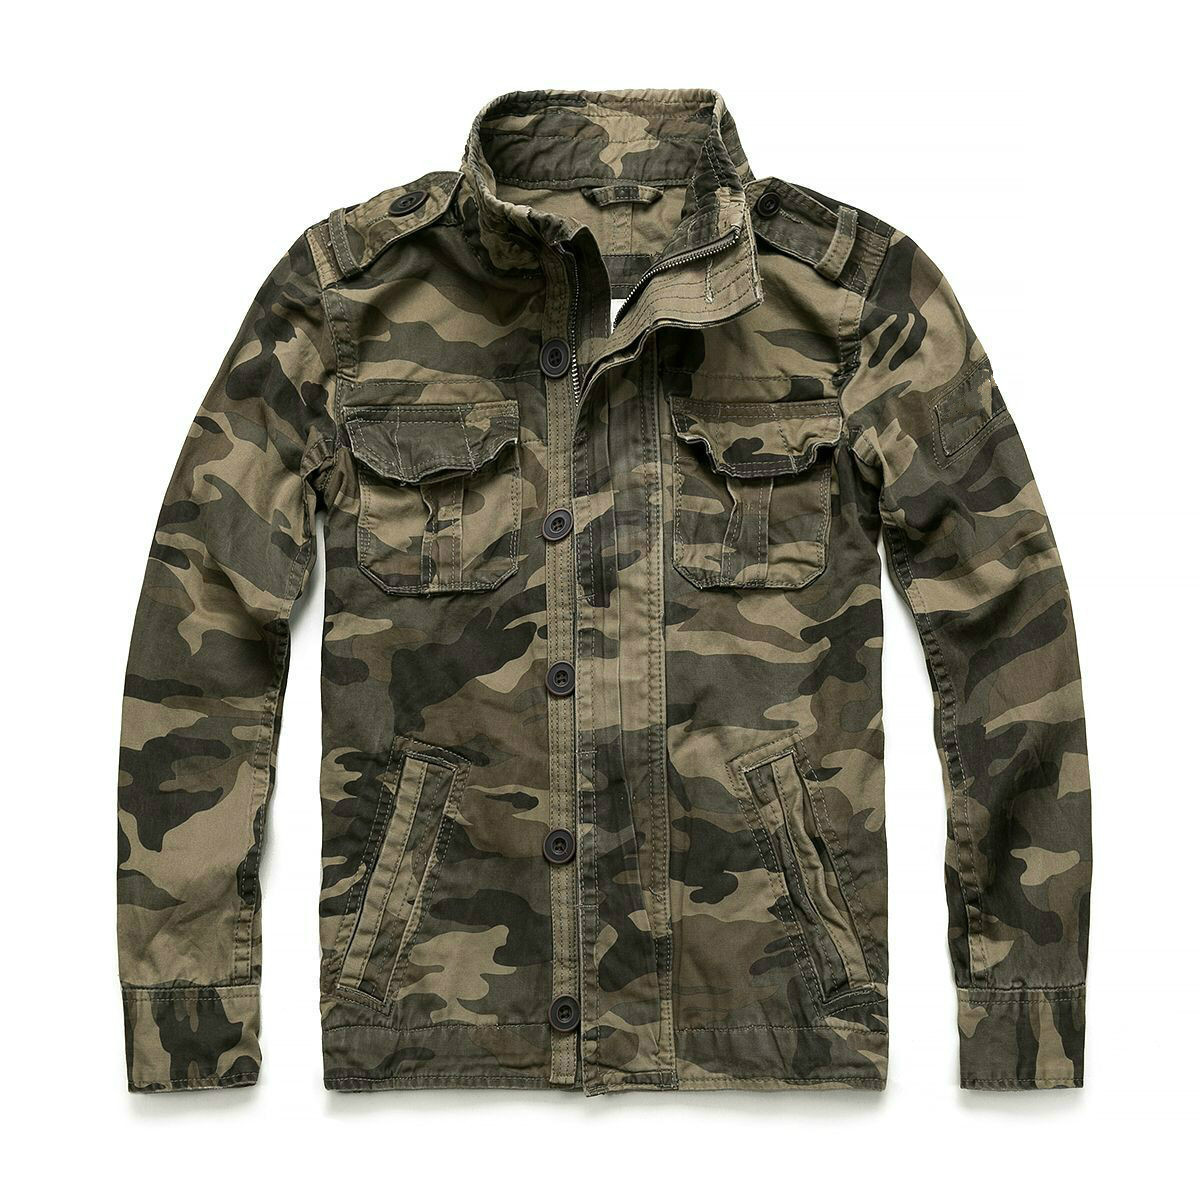 Denim Jacket Men Stand Collar Camo Jacket Boys Casual Wear Overalls Men Military Winter Thick Overall Camouflage Coat Male Tops